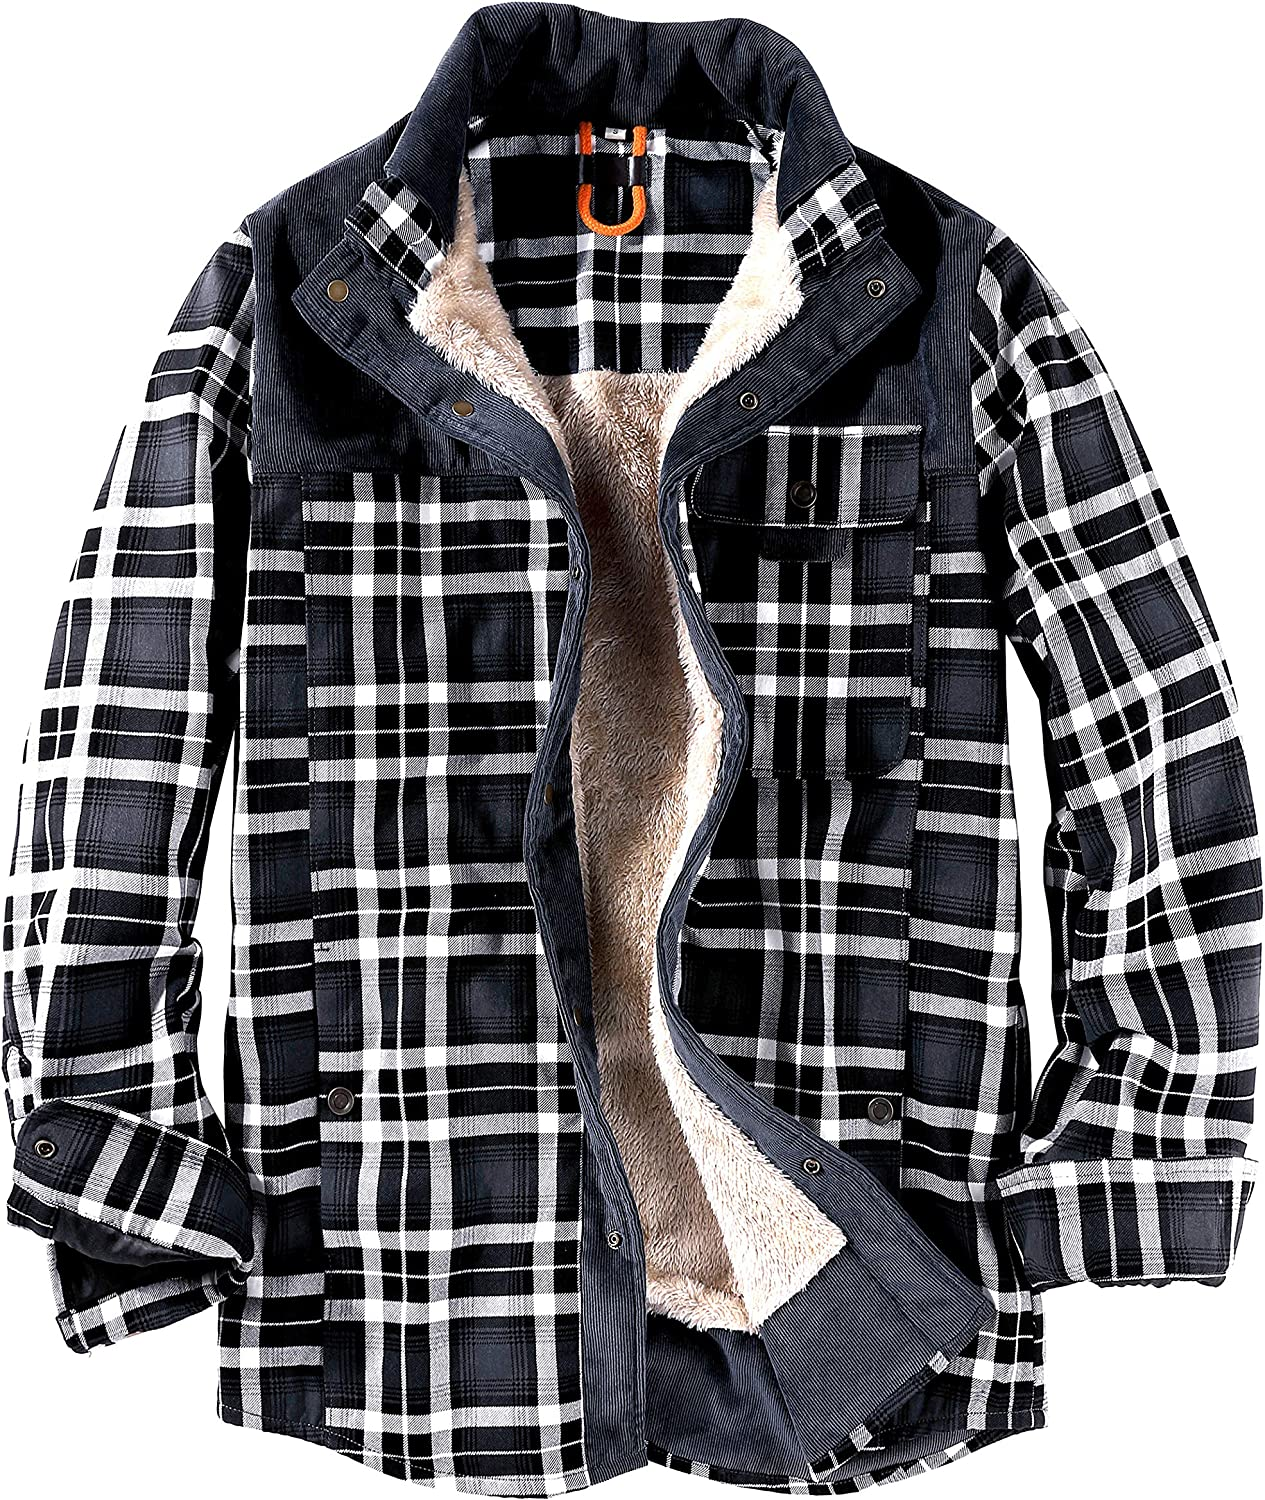 Gihuo Men's Casual Winter Sherpa Lined Button Down Plaid Shirt Jacket Shacket